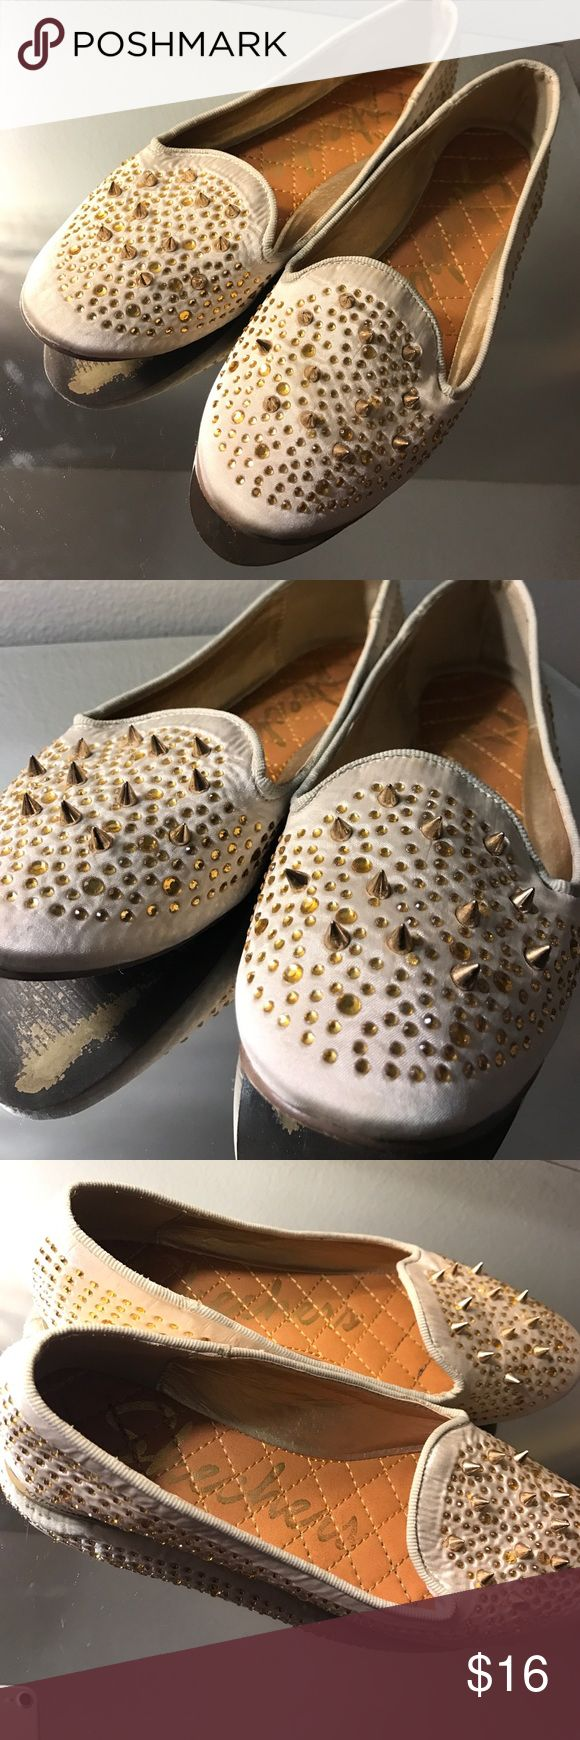 Sketchers Satin Slippers Sz7B Perfect sir mid party when the heels are too much. These soft  sweet creamy slippers have an edgy side- golden crystals and spikes! Mint condition inside and out, like new. Only signs of wear are on the bottom. Skechers Shoes Flats & Loafers